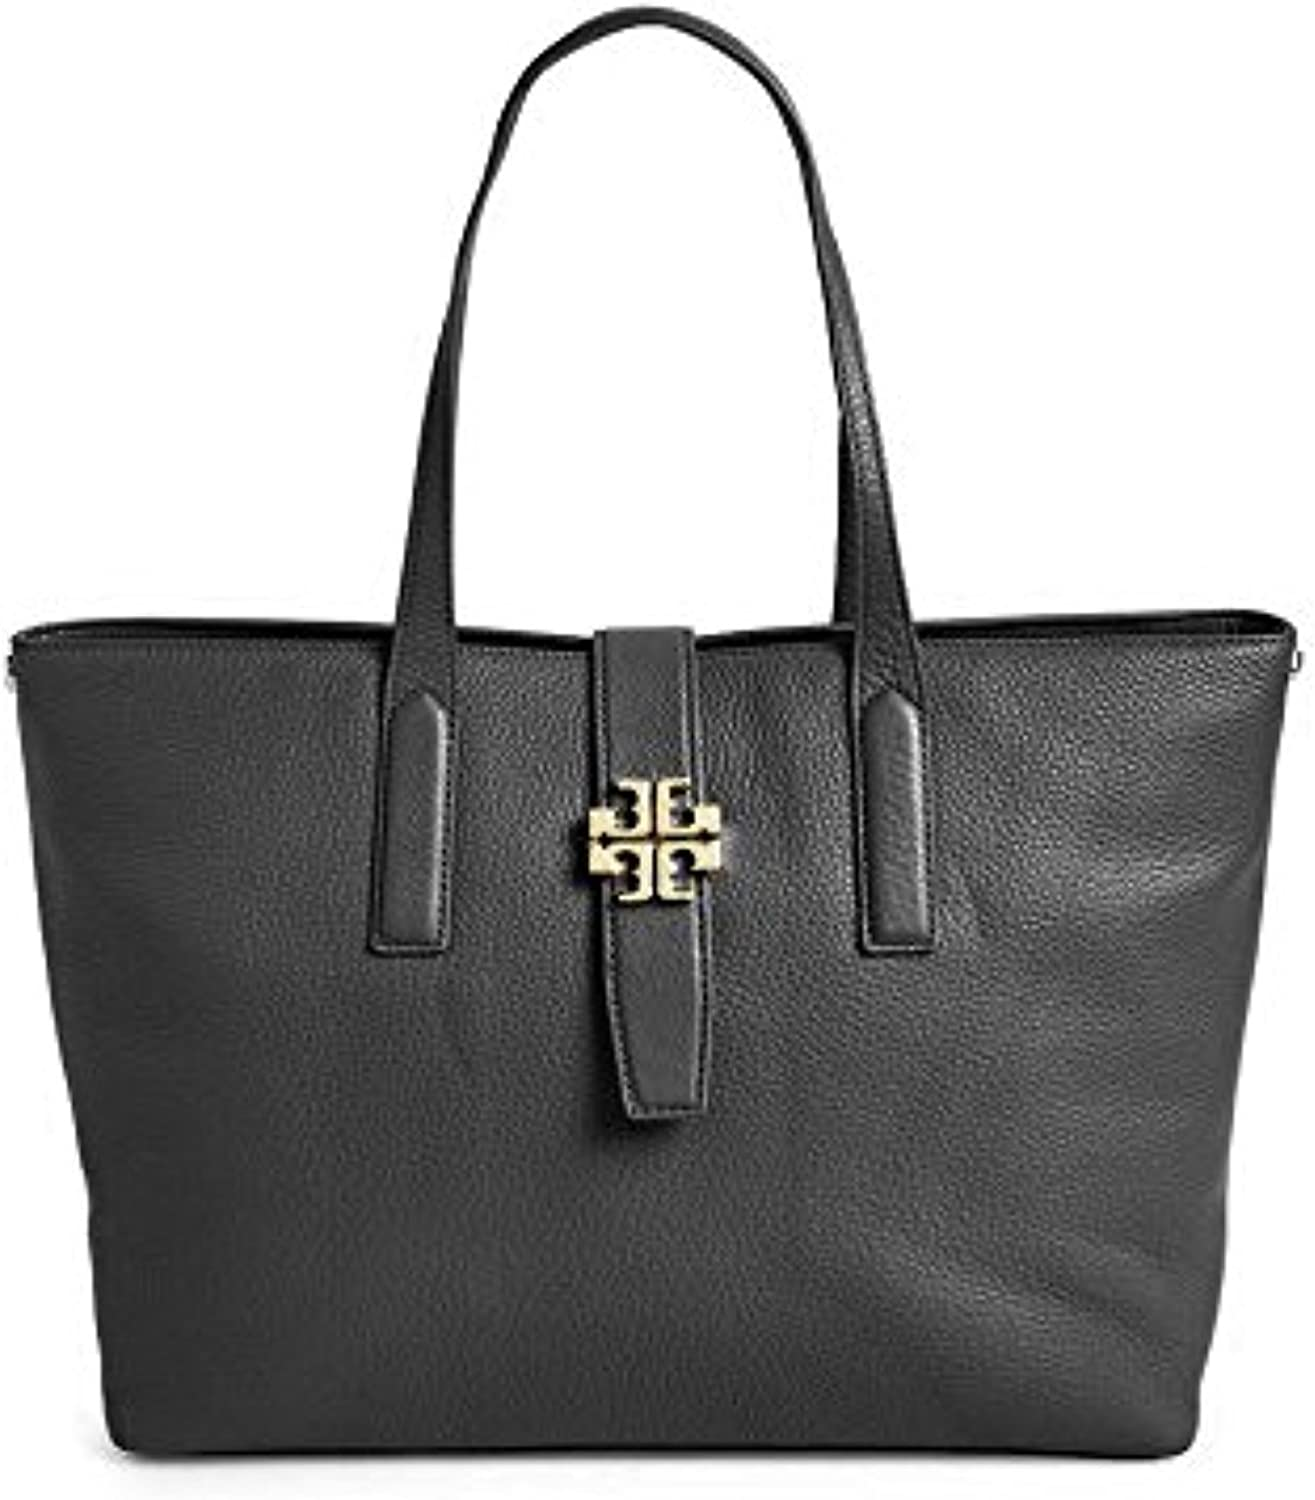 Tory Burch Plaque Leather Tote Handbag Dustbag N Authentic Sale special price Black Fashion